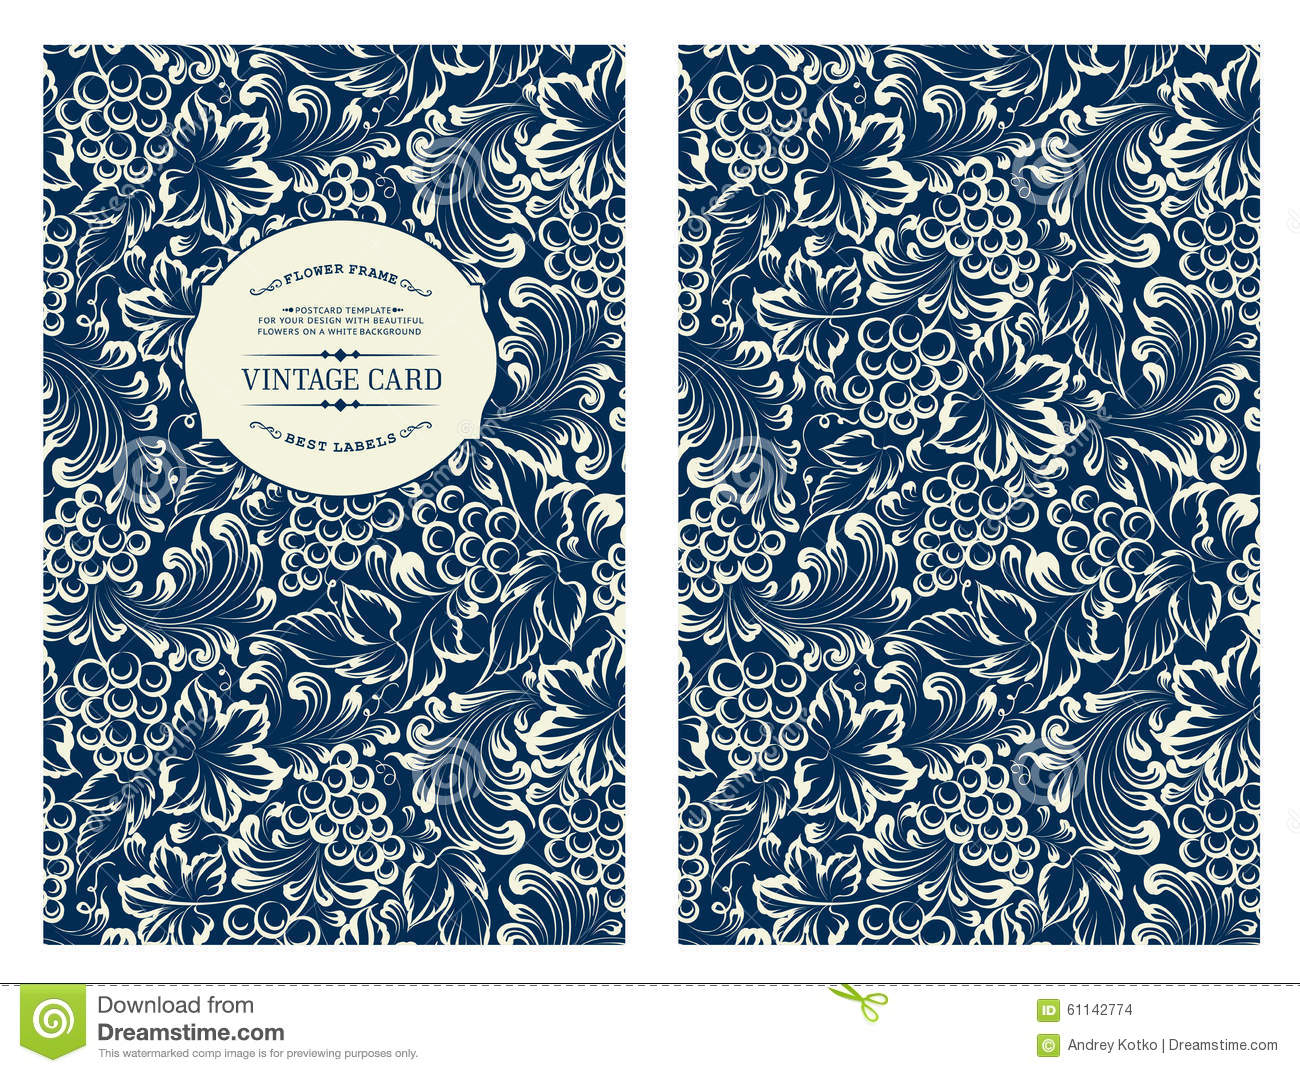 Book Cover Design Pattern : Book cover design stock vector illustration of frame